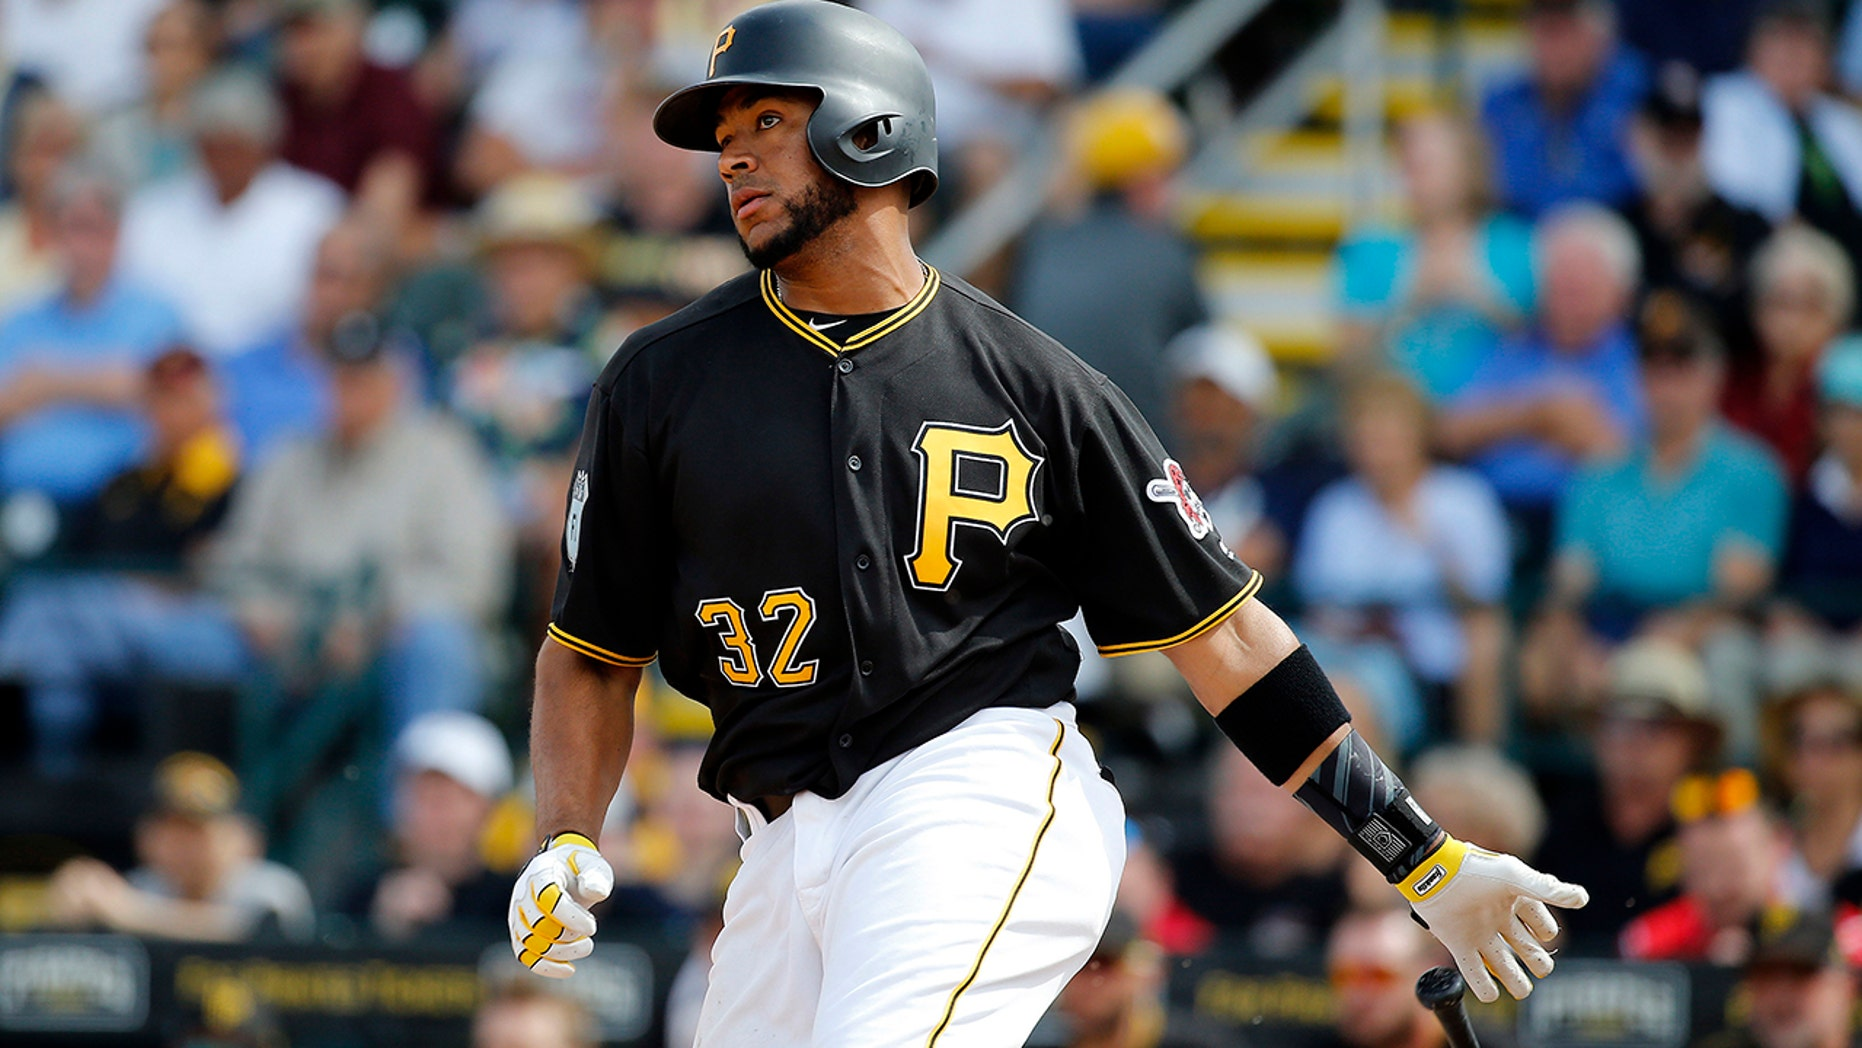 Pittsburgh Pirates catcher Elias Diaz's mother was kidnapped Thursday in Venezuela.